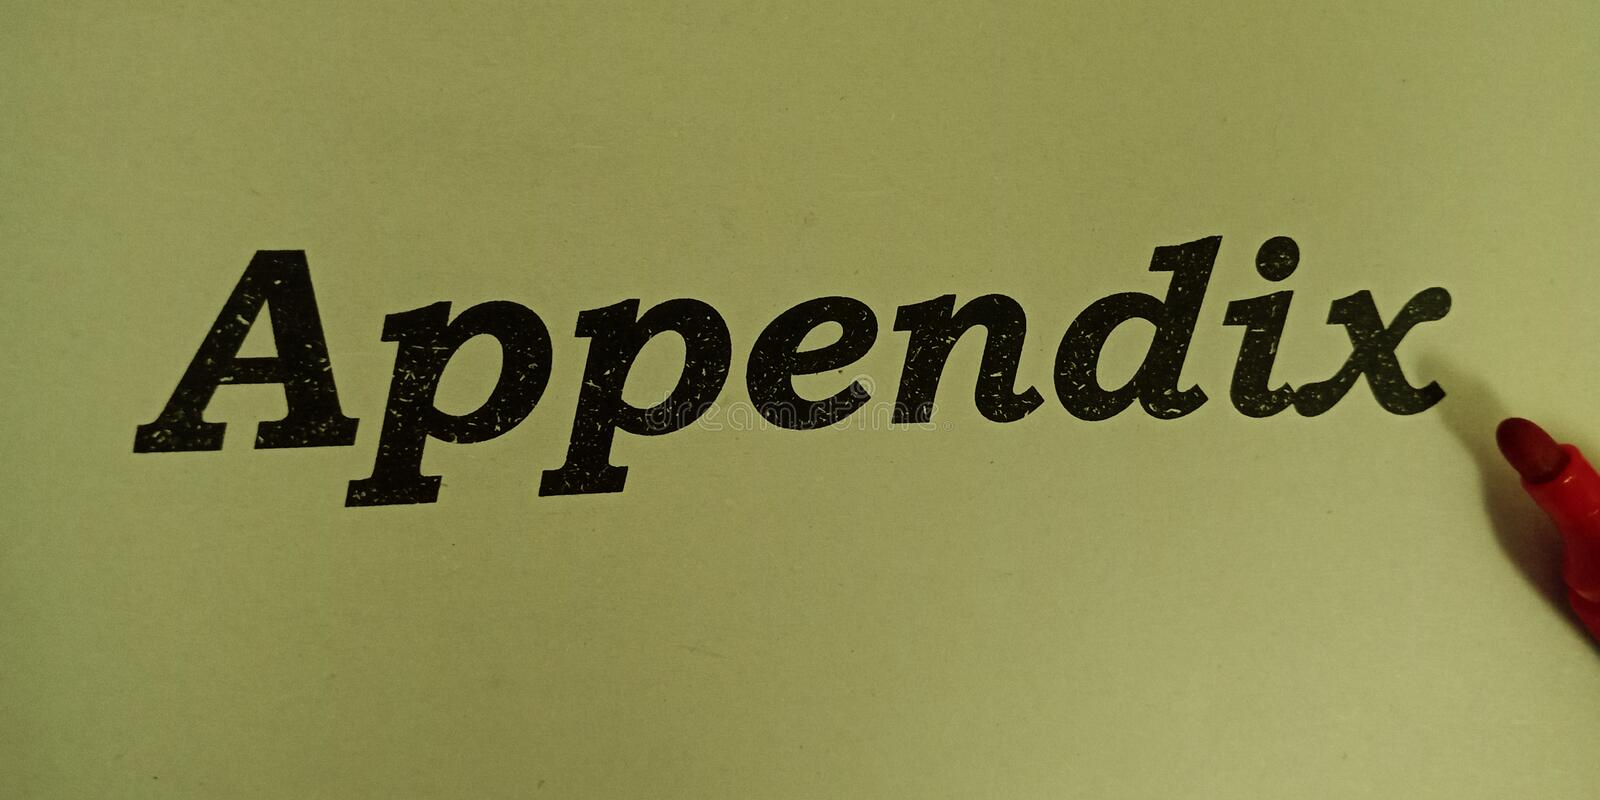 Appendix words in black english letters written on paper stock image